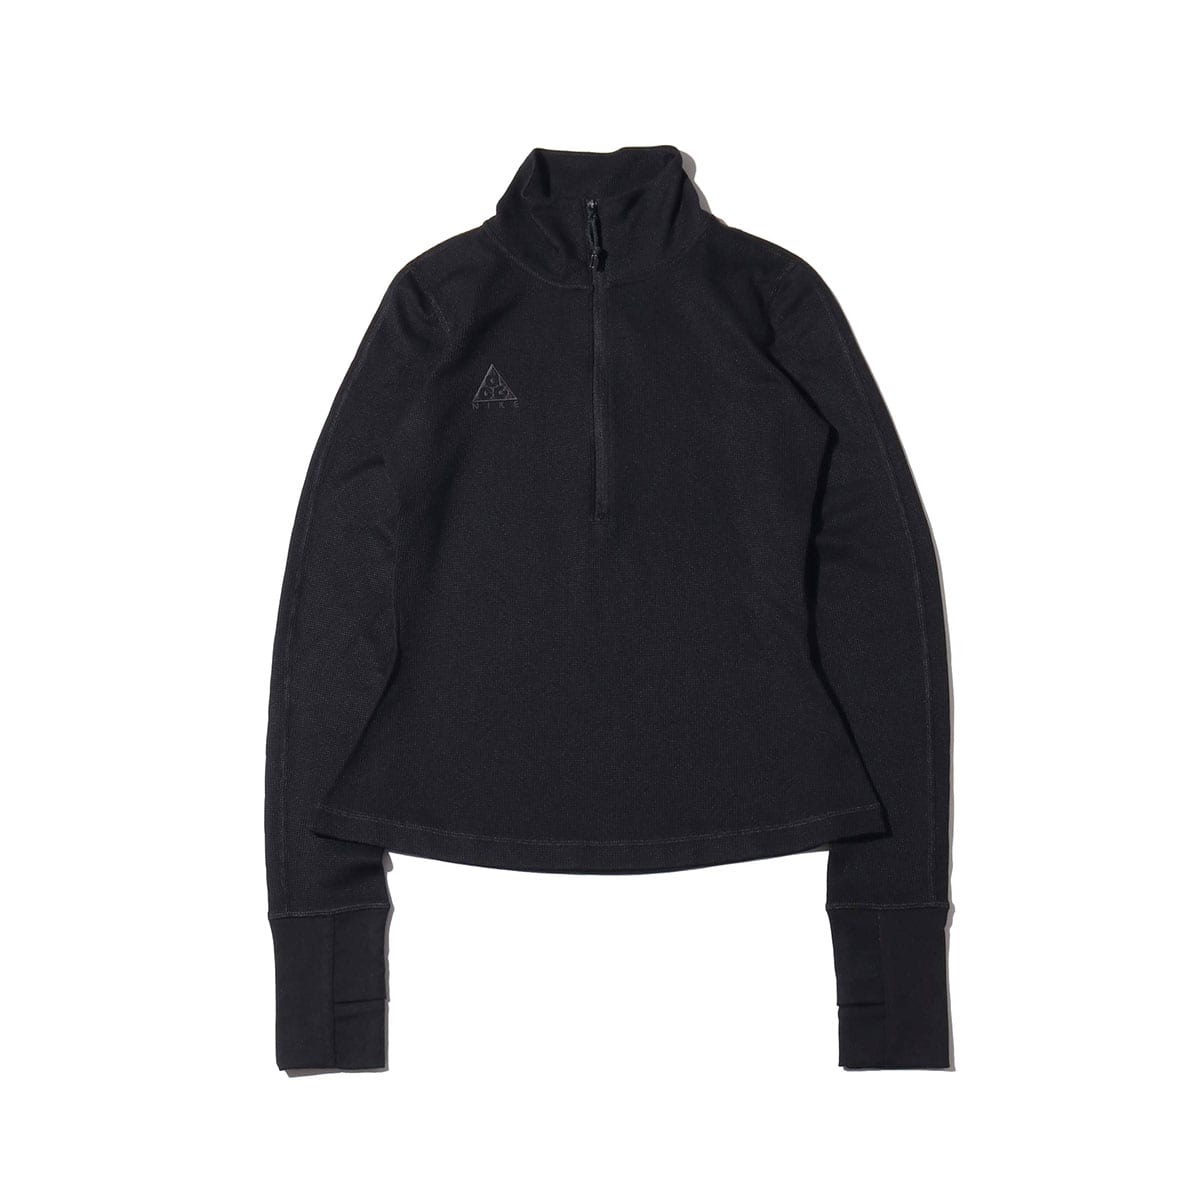 NIKE AS W NRG ACG LS THERMAL TOP BLACK/ANTHRACITE 20SP-S_photo_large